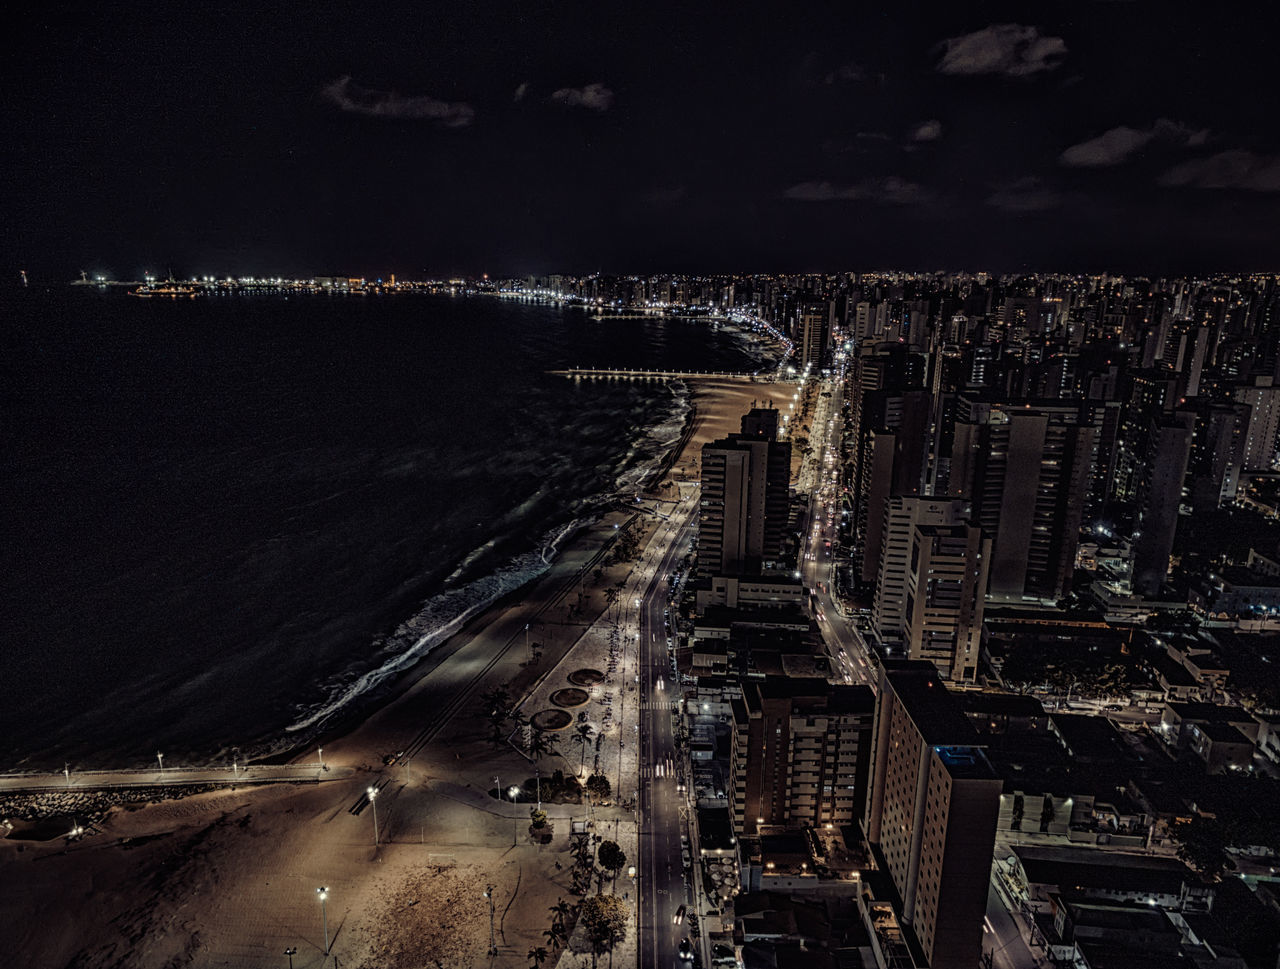 Up Fortaleza/Ceará - Brazil- Night City by ©NenoImagens Aereal View Darkness And Light Drone  Dronephotography Fortaleza Neno Night Lights Nightcity Up View